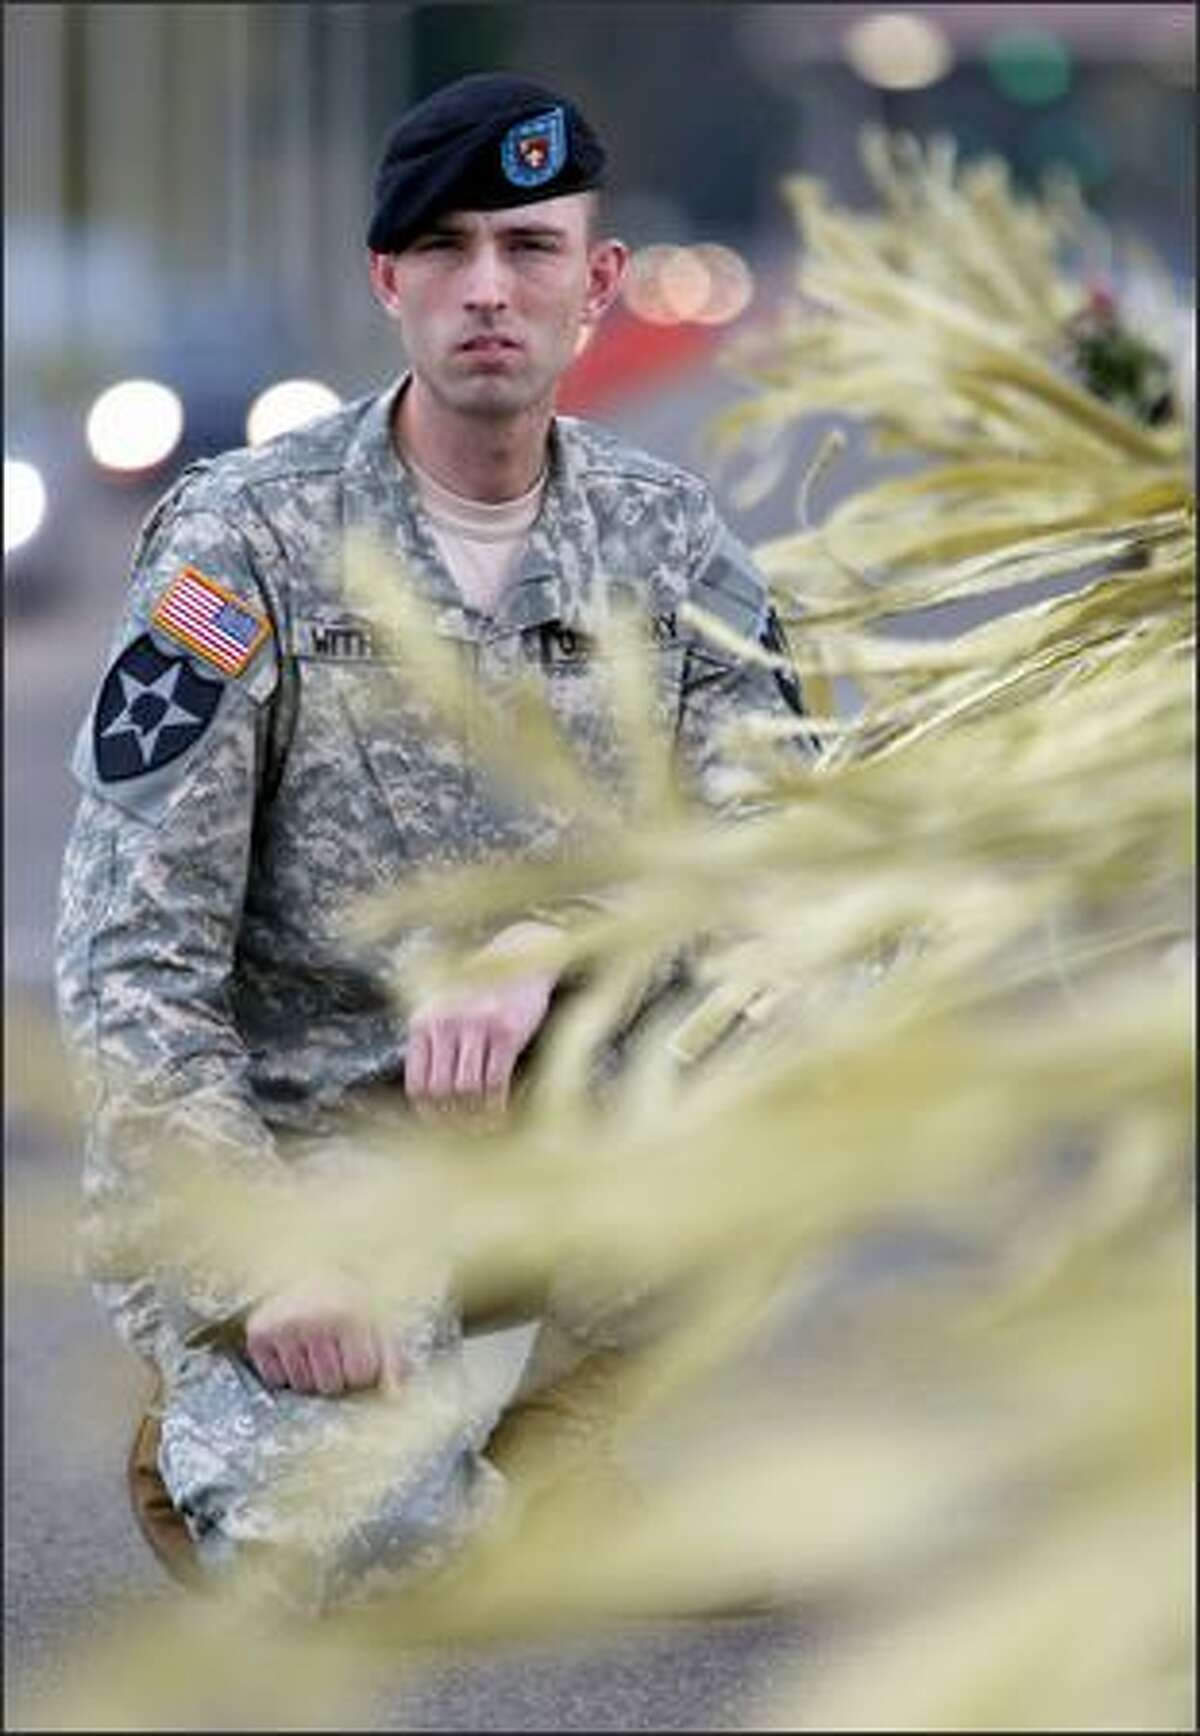 U.S. Army soldier Rob Withrow, photographed among the yellow ribbons tied to the Freedom Bridge across Interstate 5 near Fort Lewis. Since his problems began, Withrow has been reduced in rank from sergeant to private.